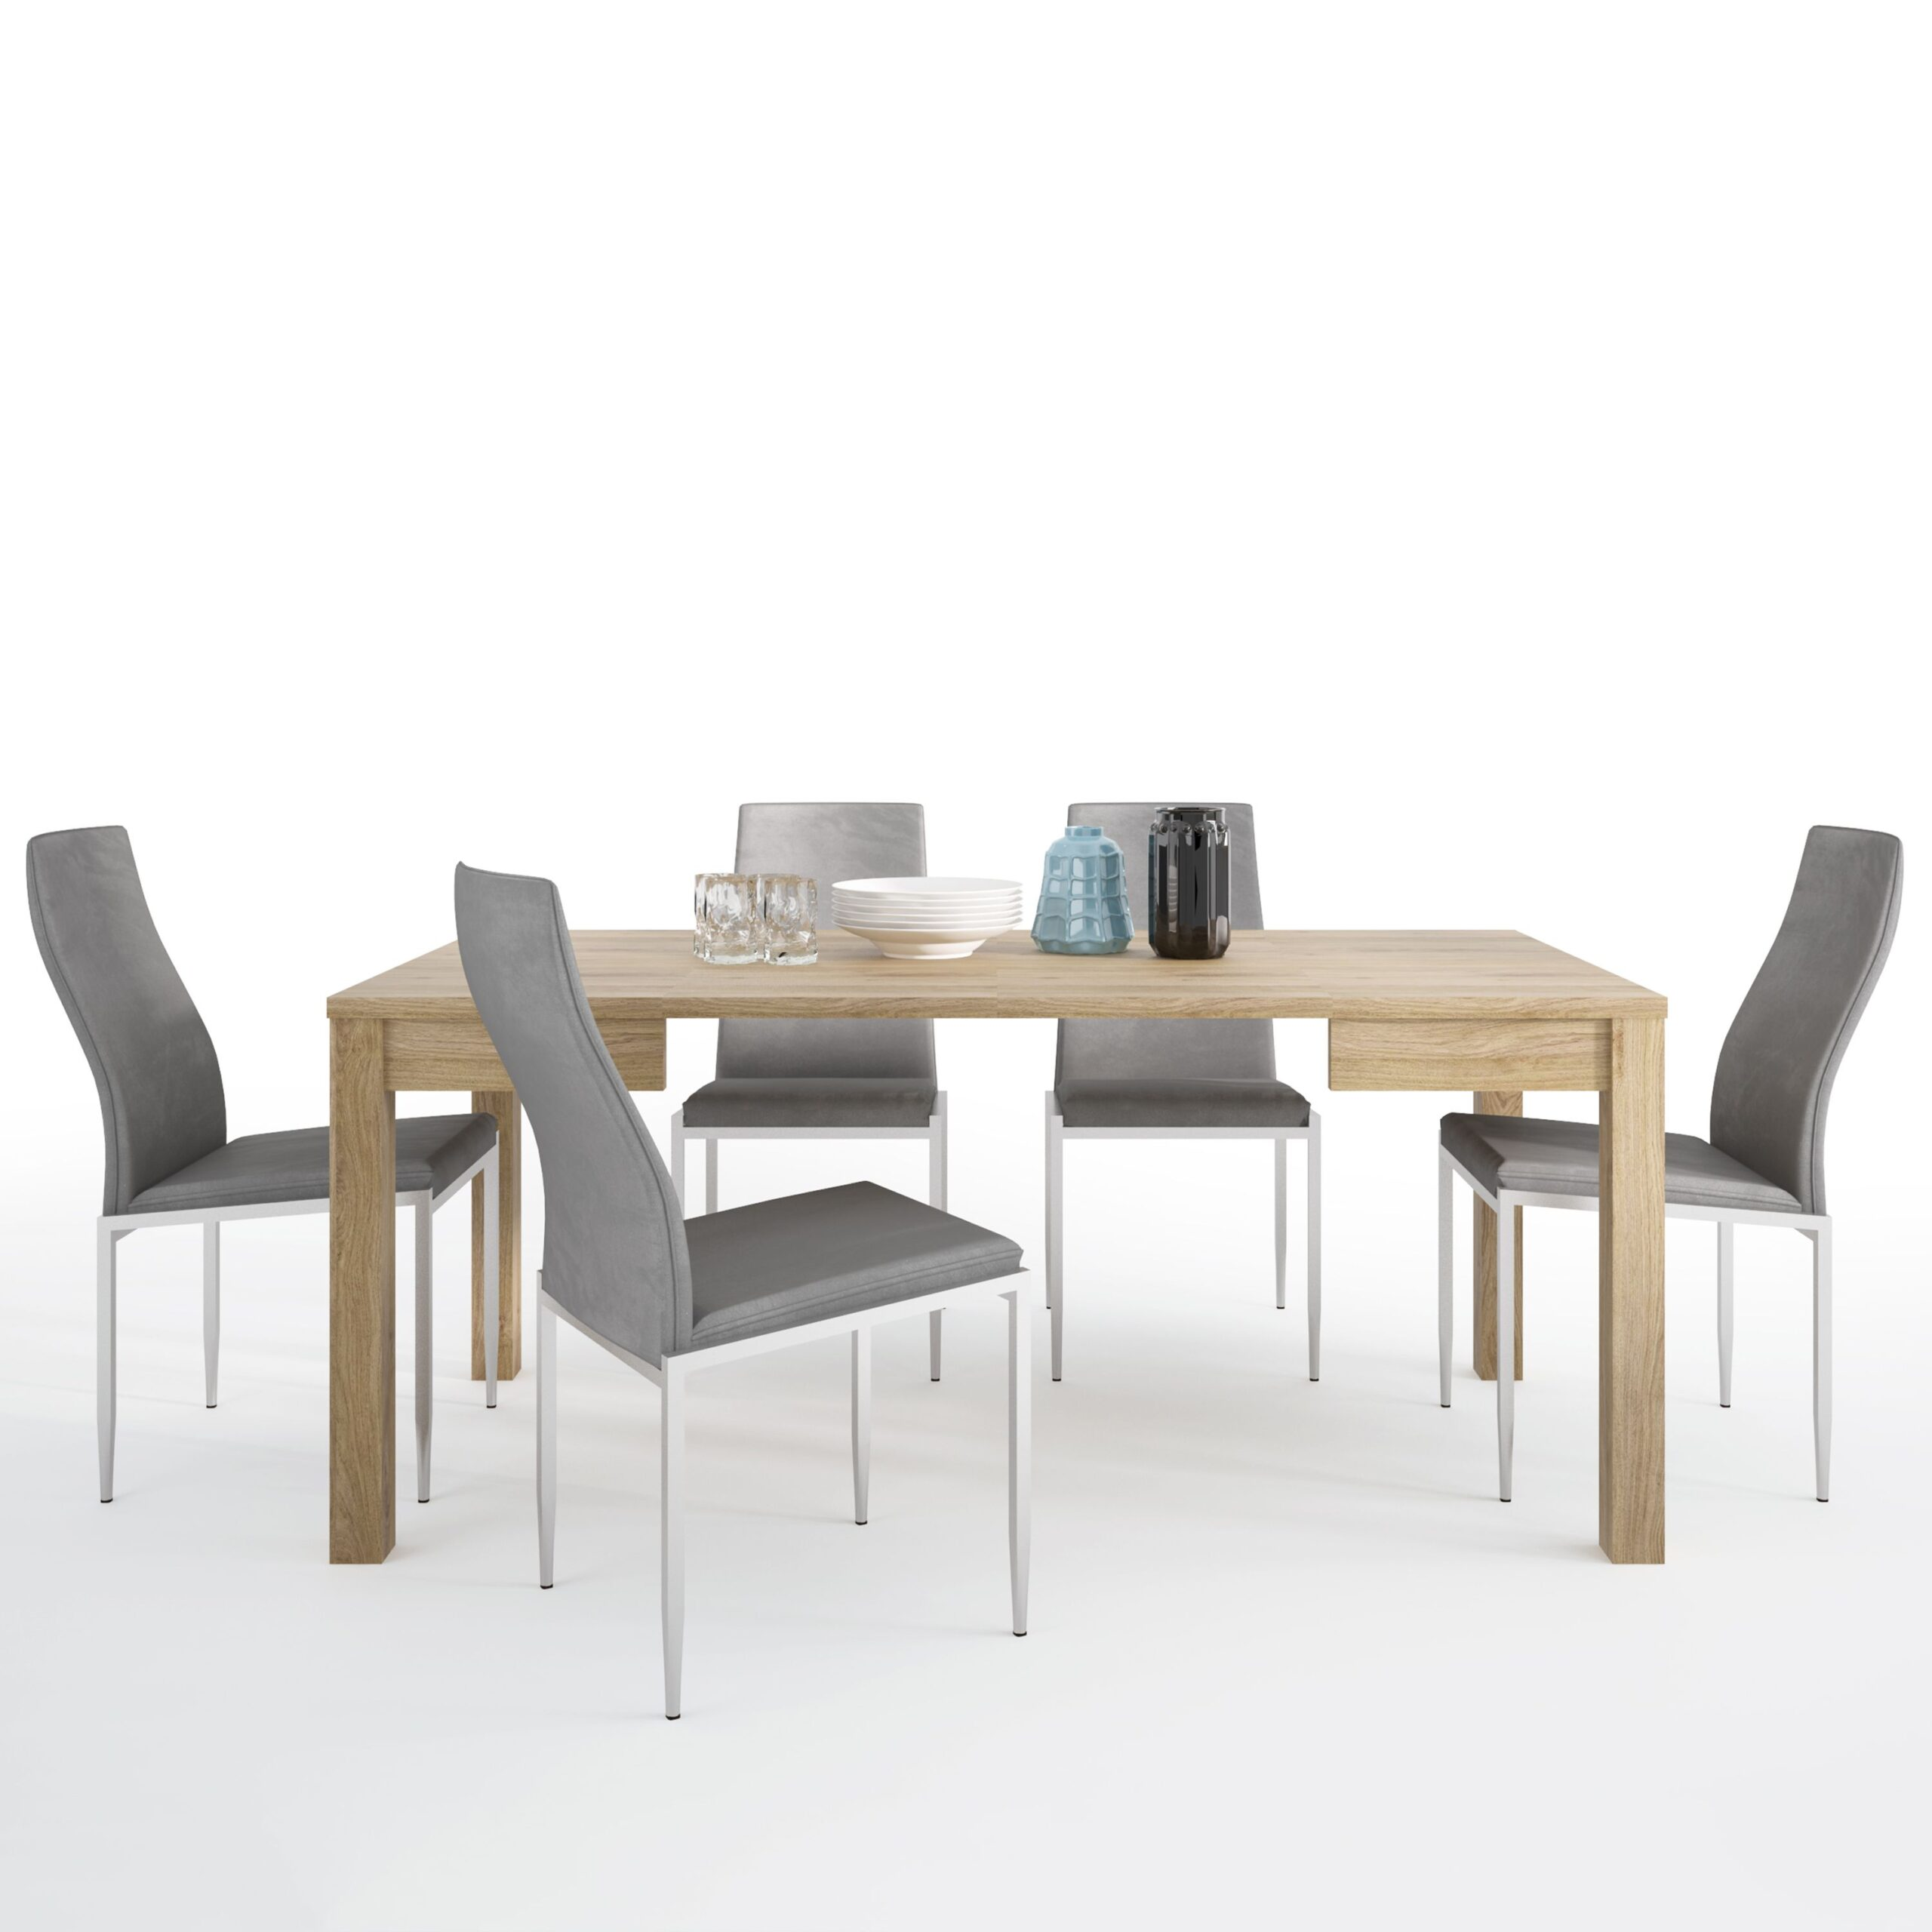 TiaMaria Dining set package TiaMaria Extending Dining Table + 6 Lillie High Back Chair Grey.